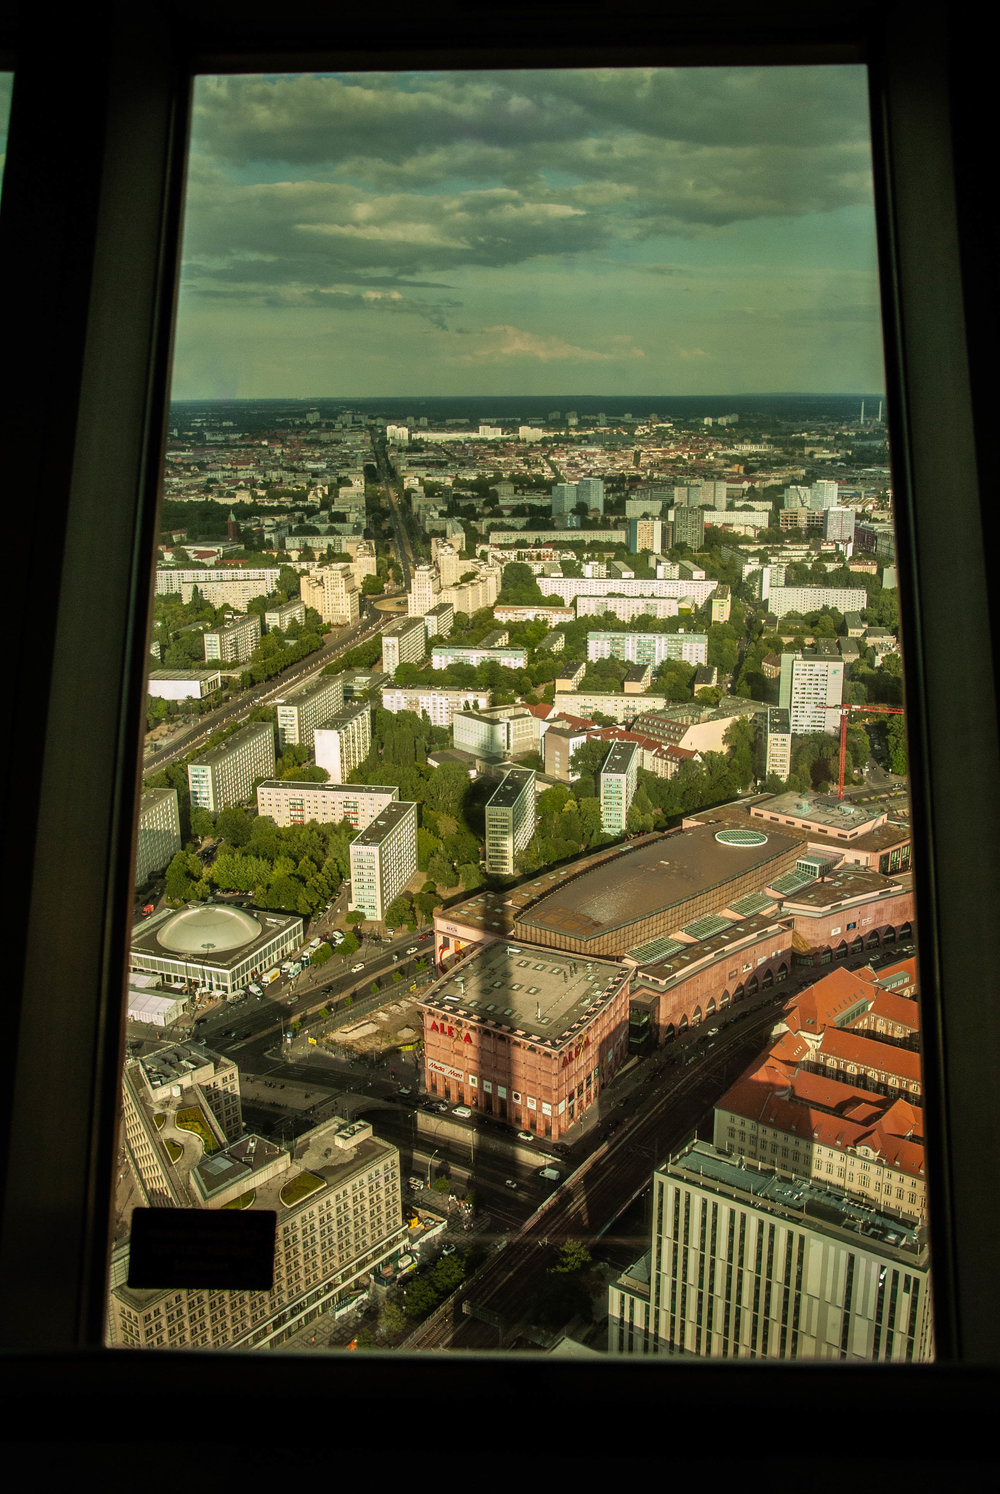 Views from Fernsehturm